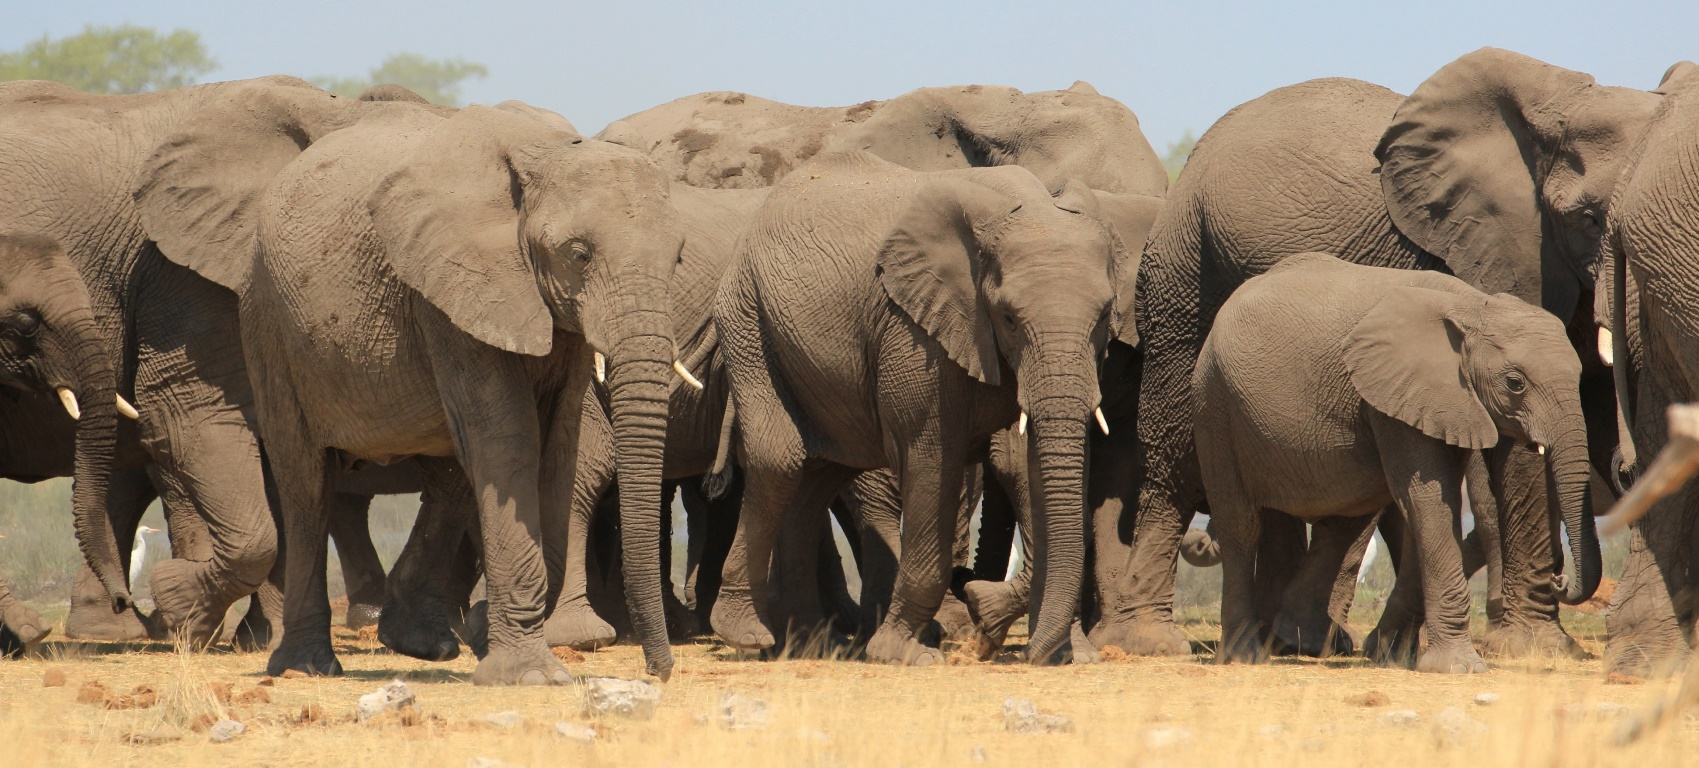 Herd of elephants milling around